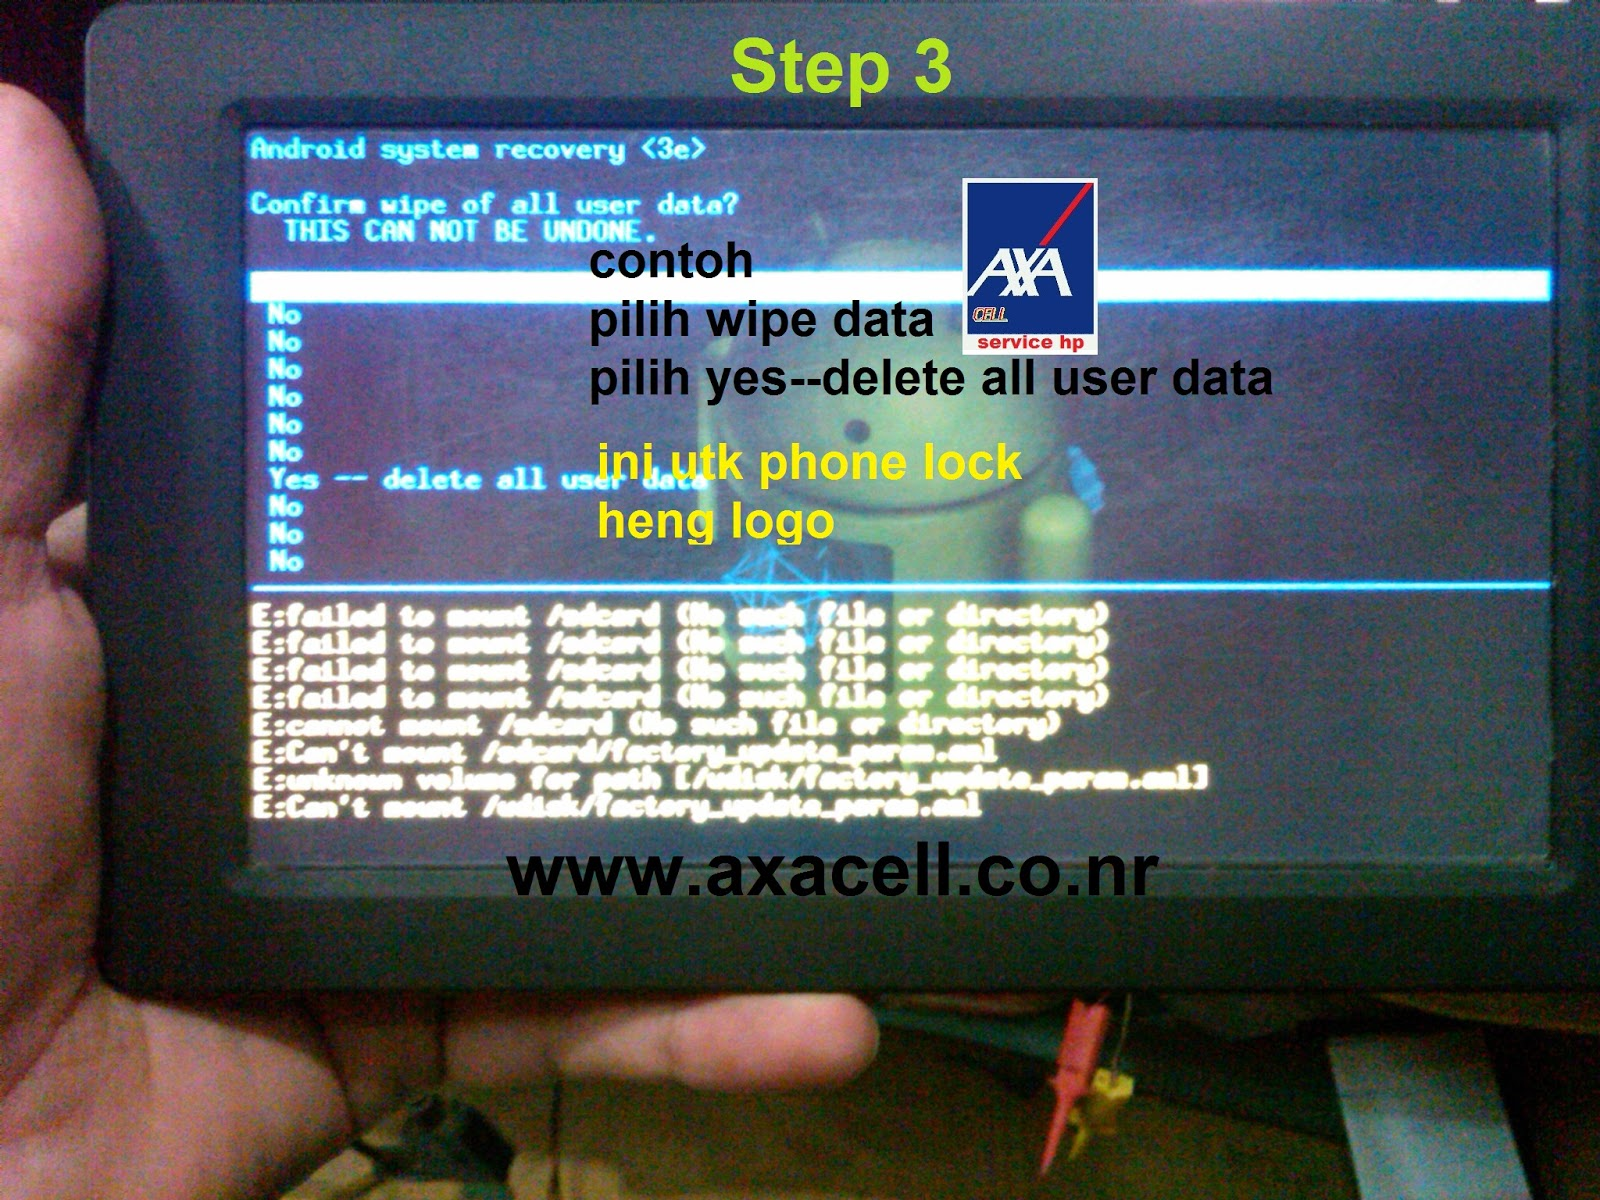 Axacell ADVAN Vandroid T2i Recovery Mode